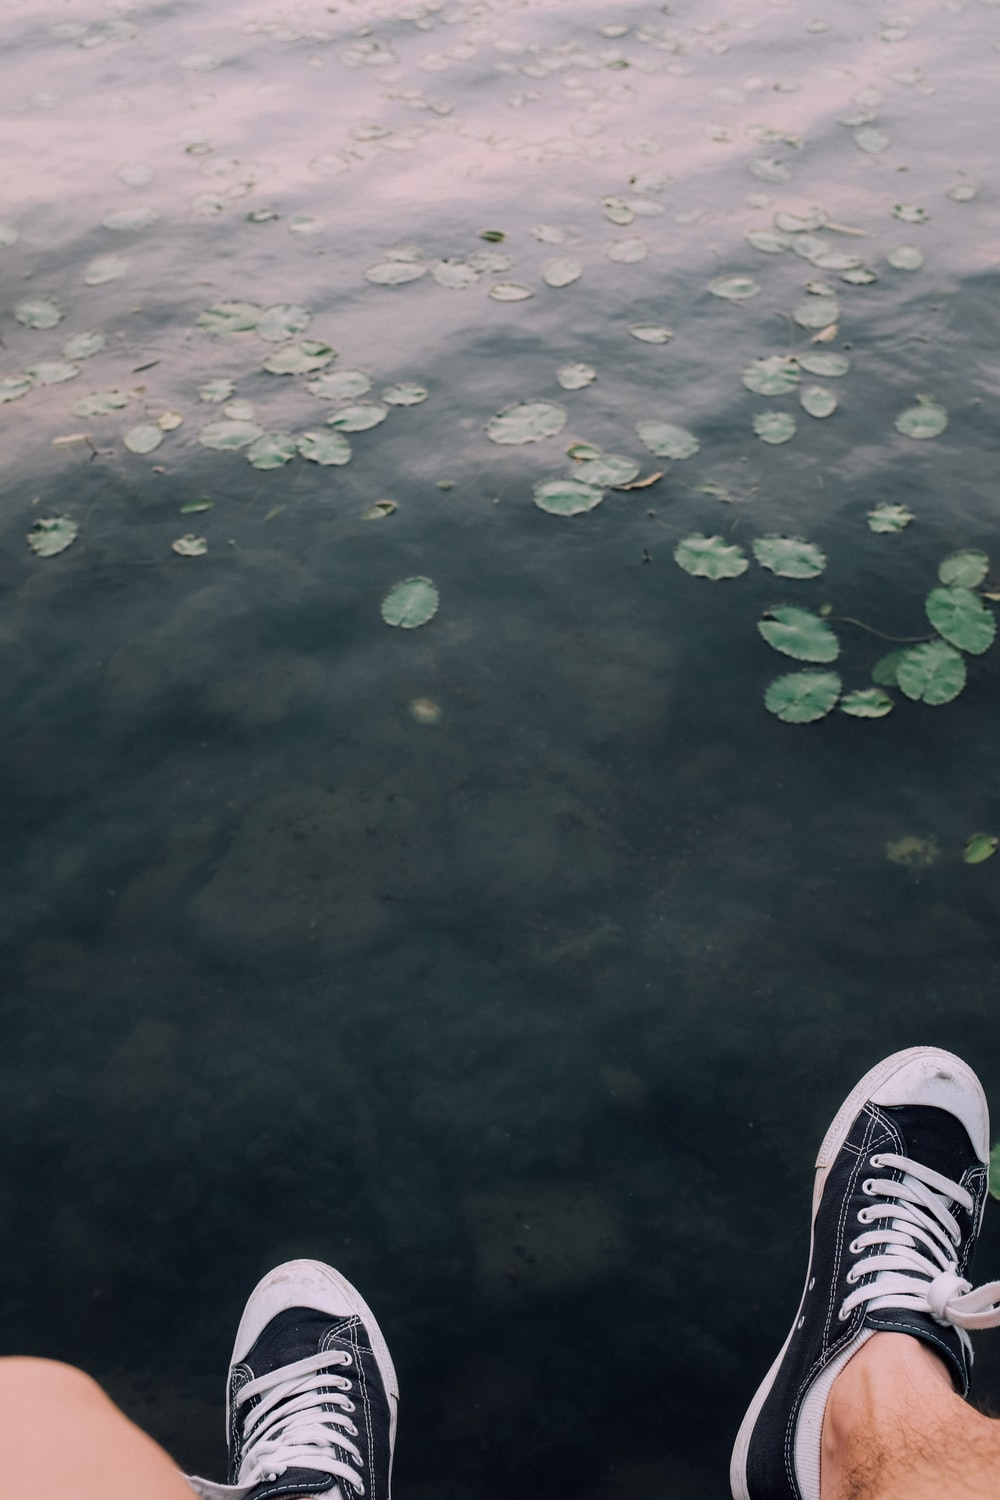 person wearing black and white sneakers standing on water